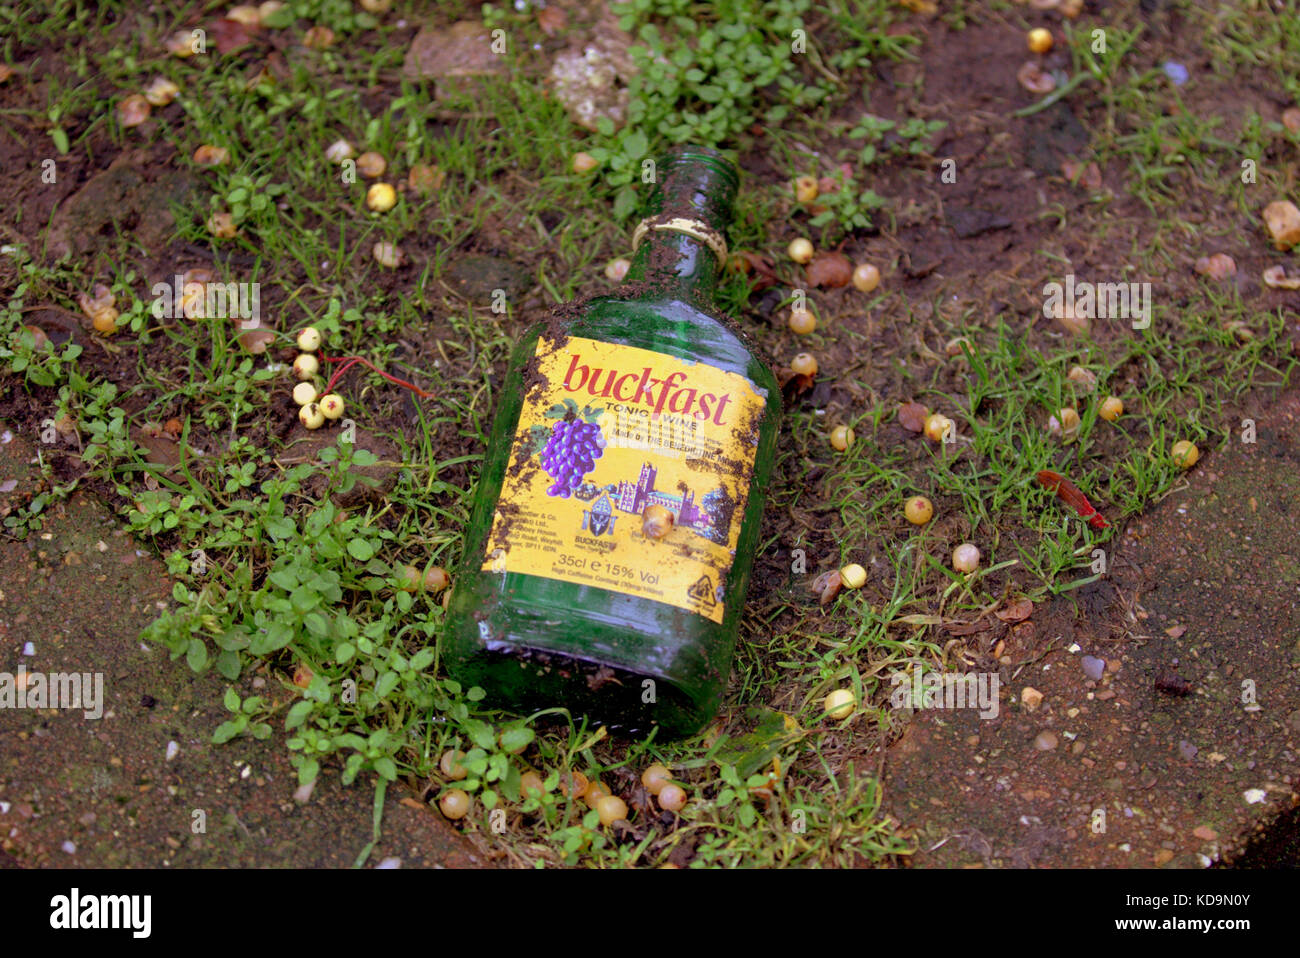 57a890aa290 discarded buckfast bottle on earth grass Glasgow Scottish alcohol problem  glasgow health - Stock Image